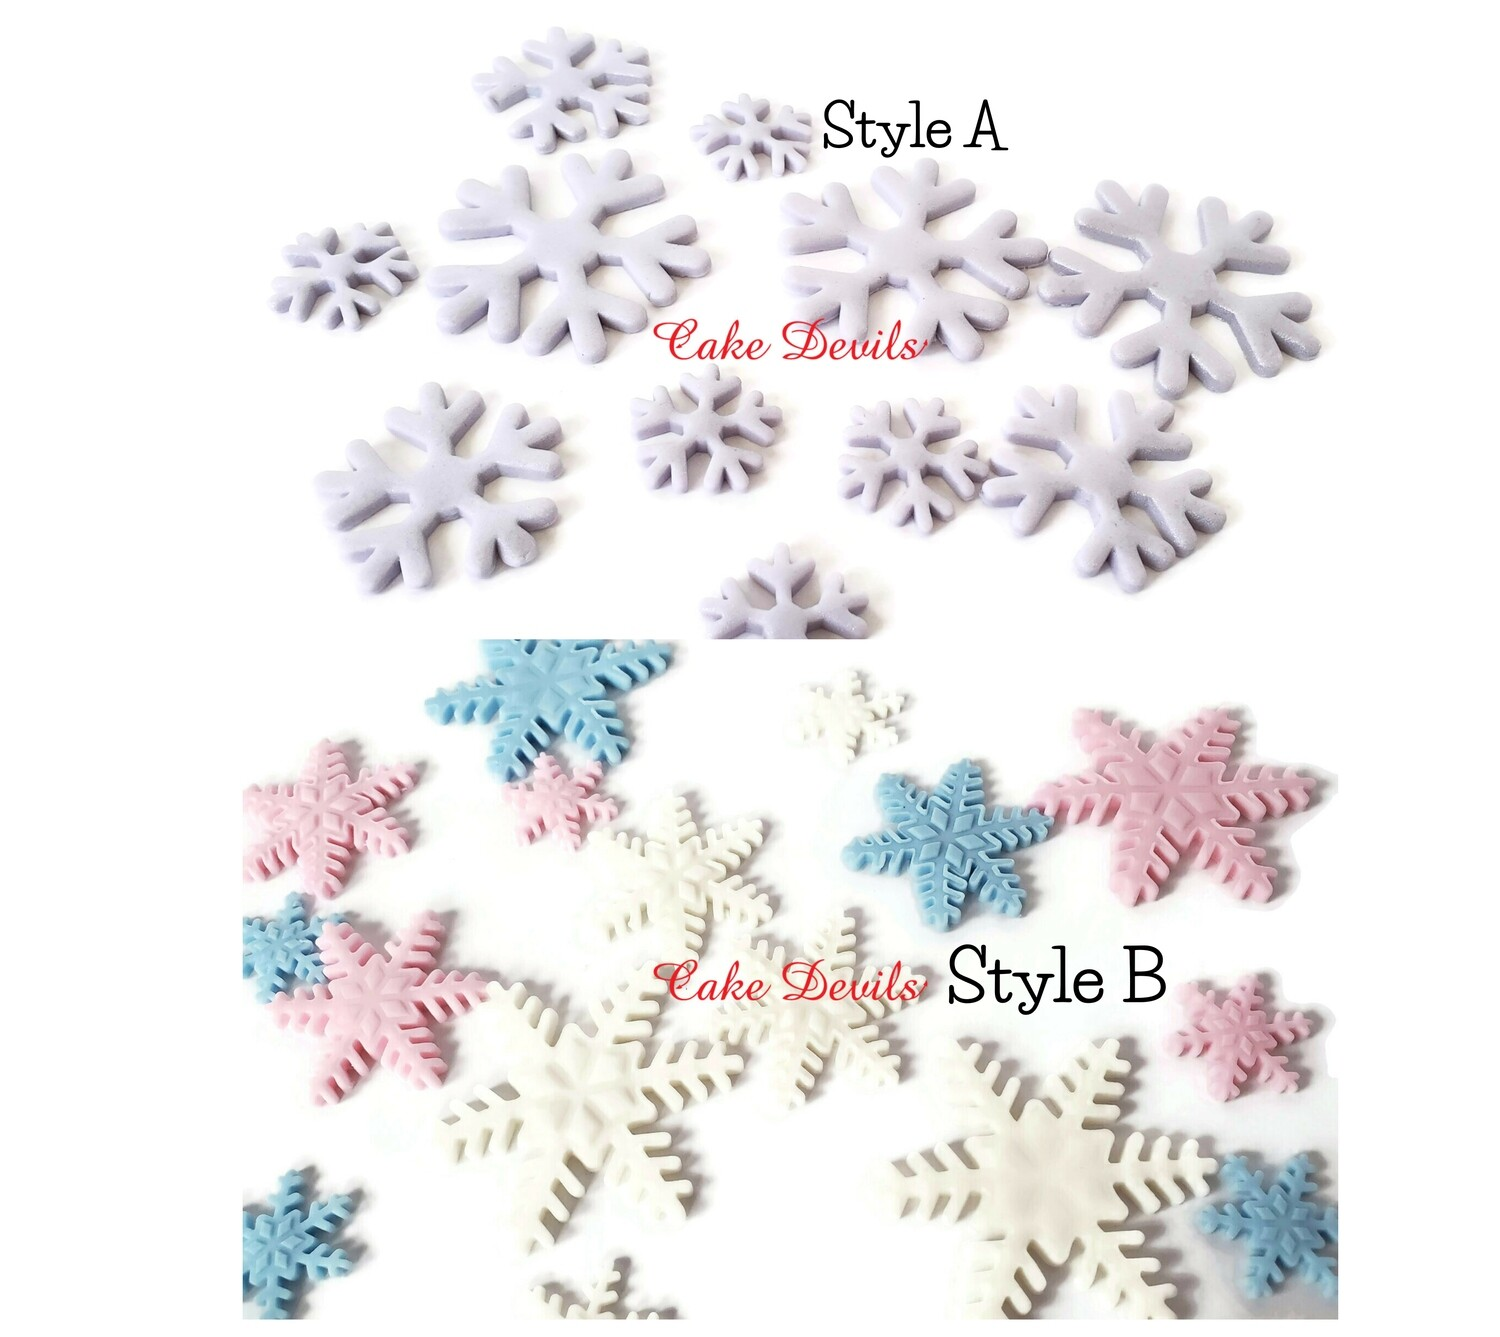 Fondant Snowflakes Cake Toppers and Snowballs Cake Decorations